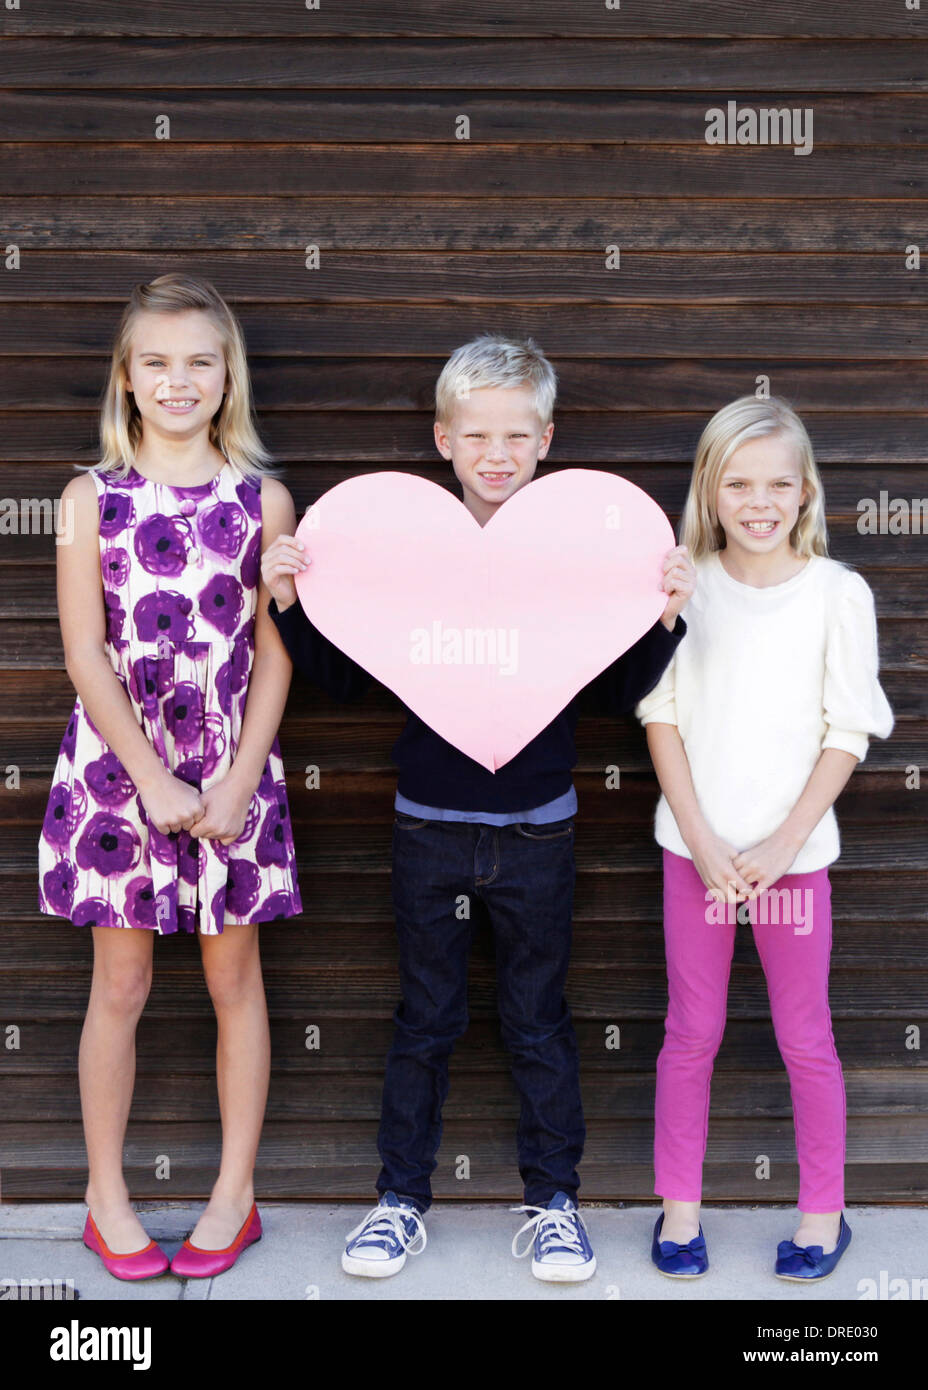 Siblings holding up large paper heart Stock Photo